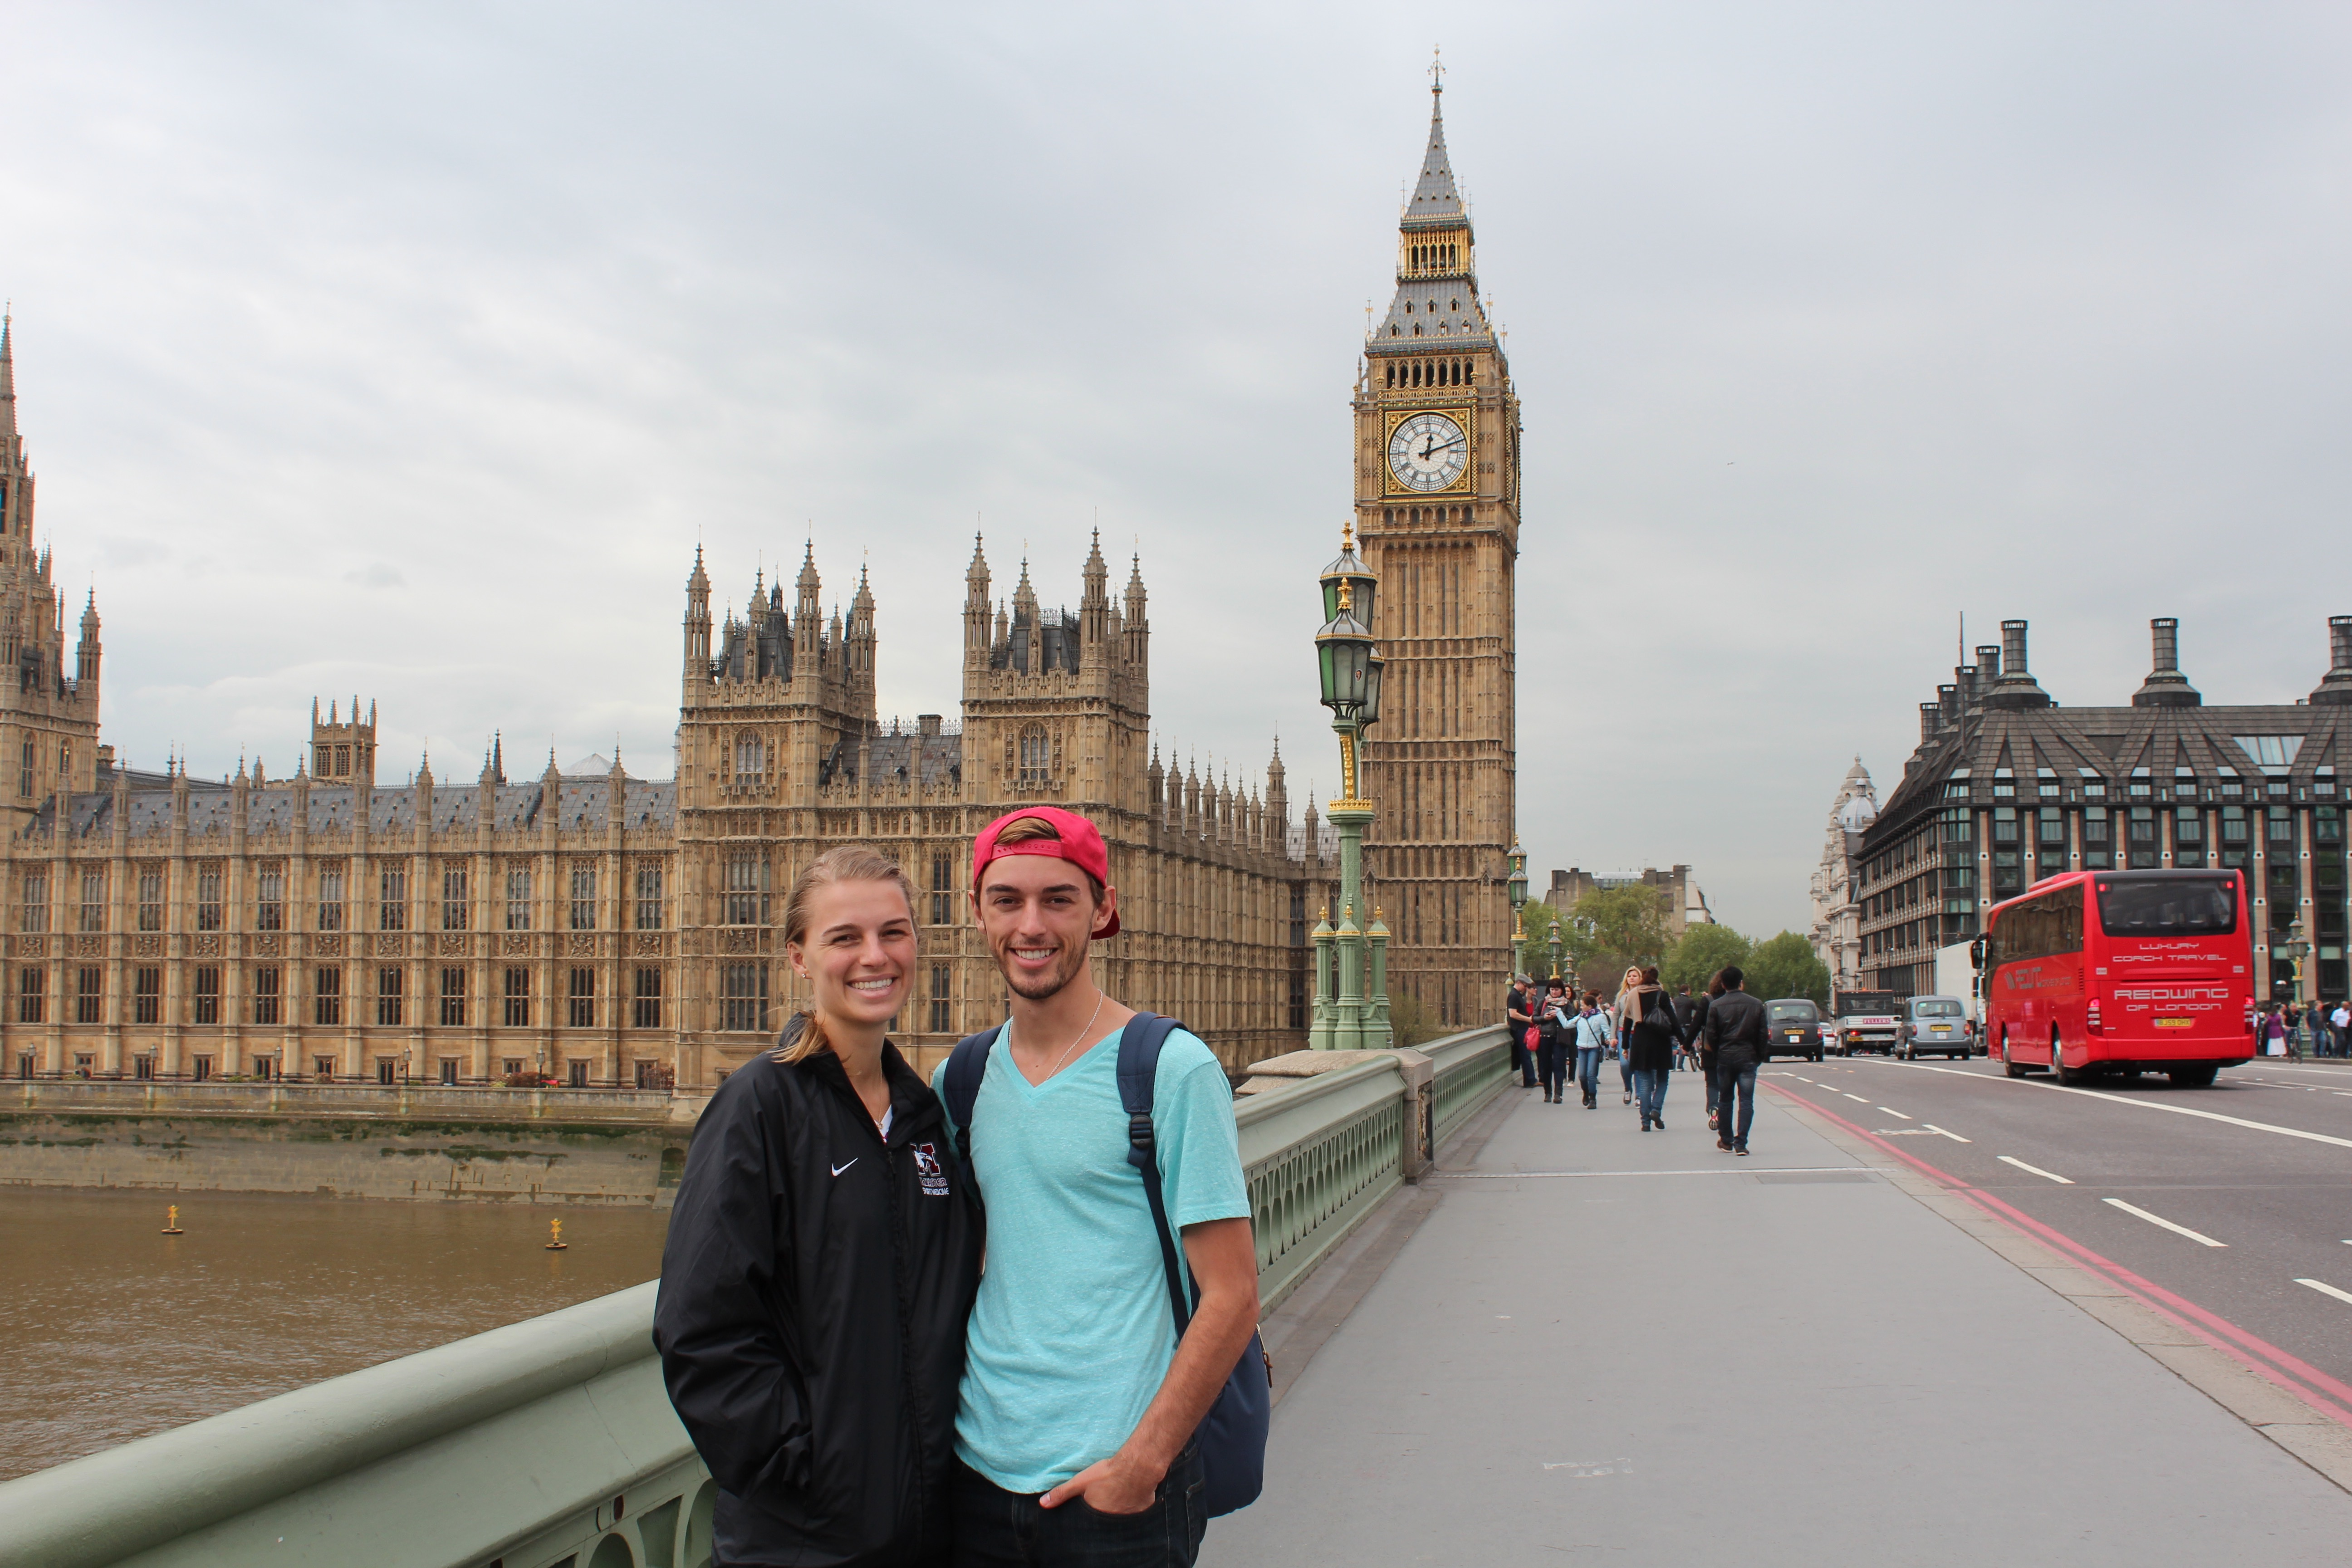 Justin and his sister in London